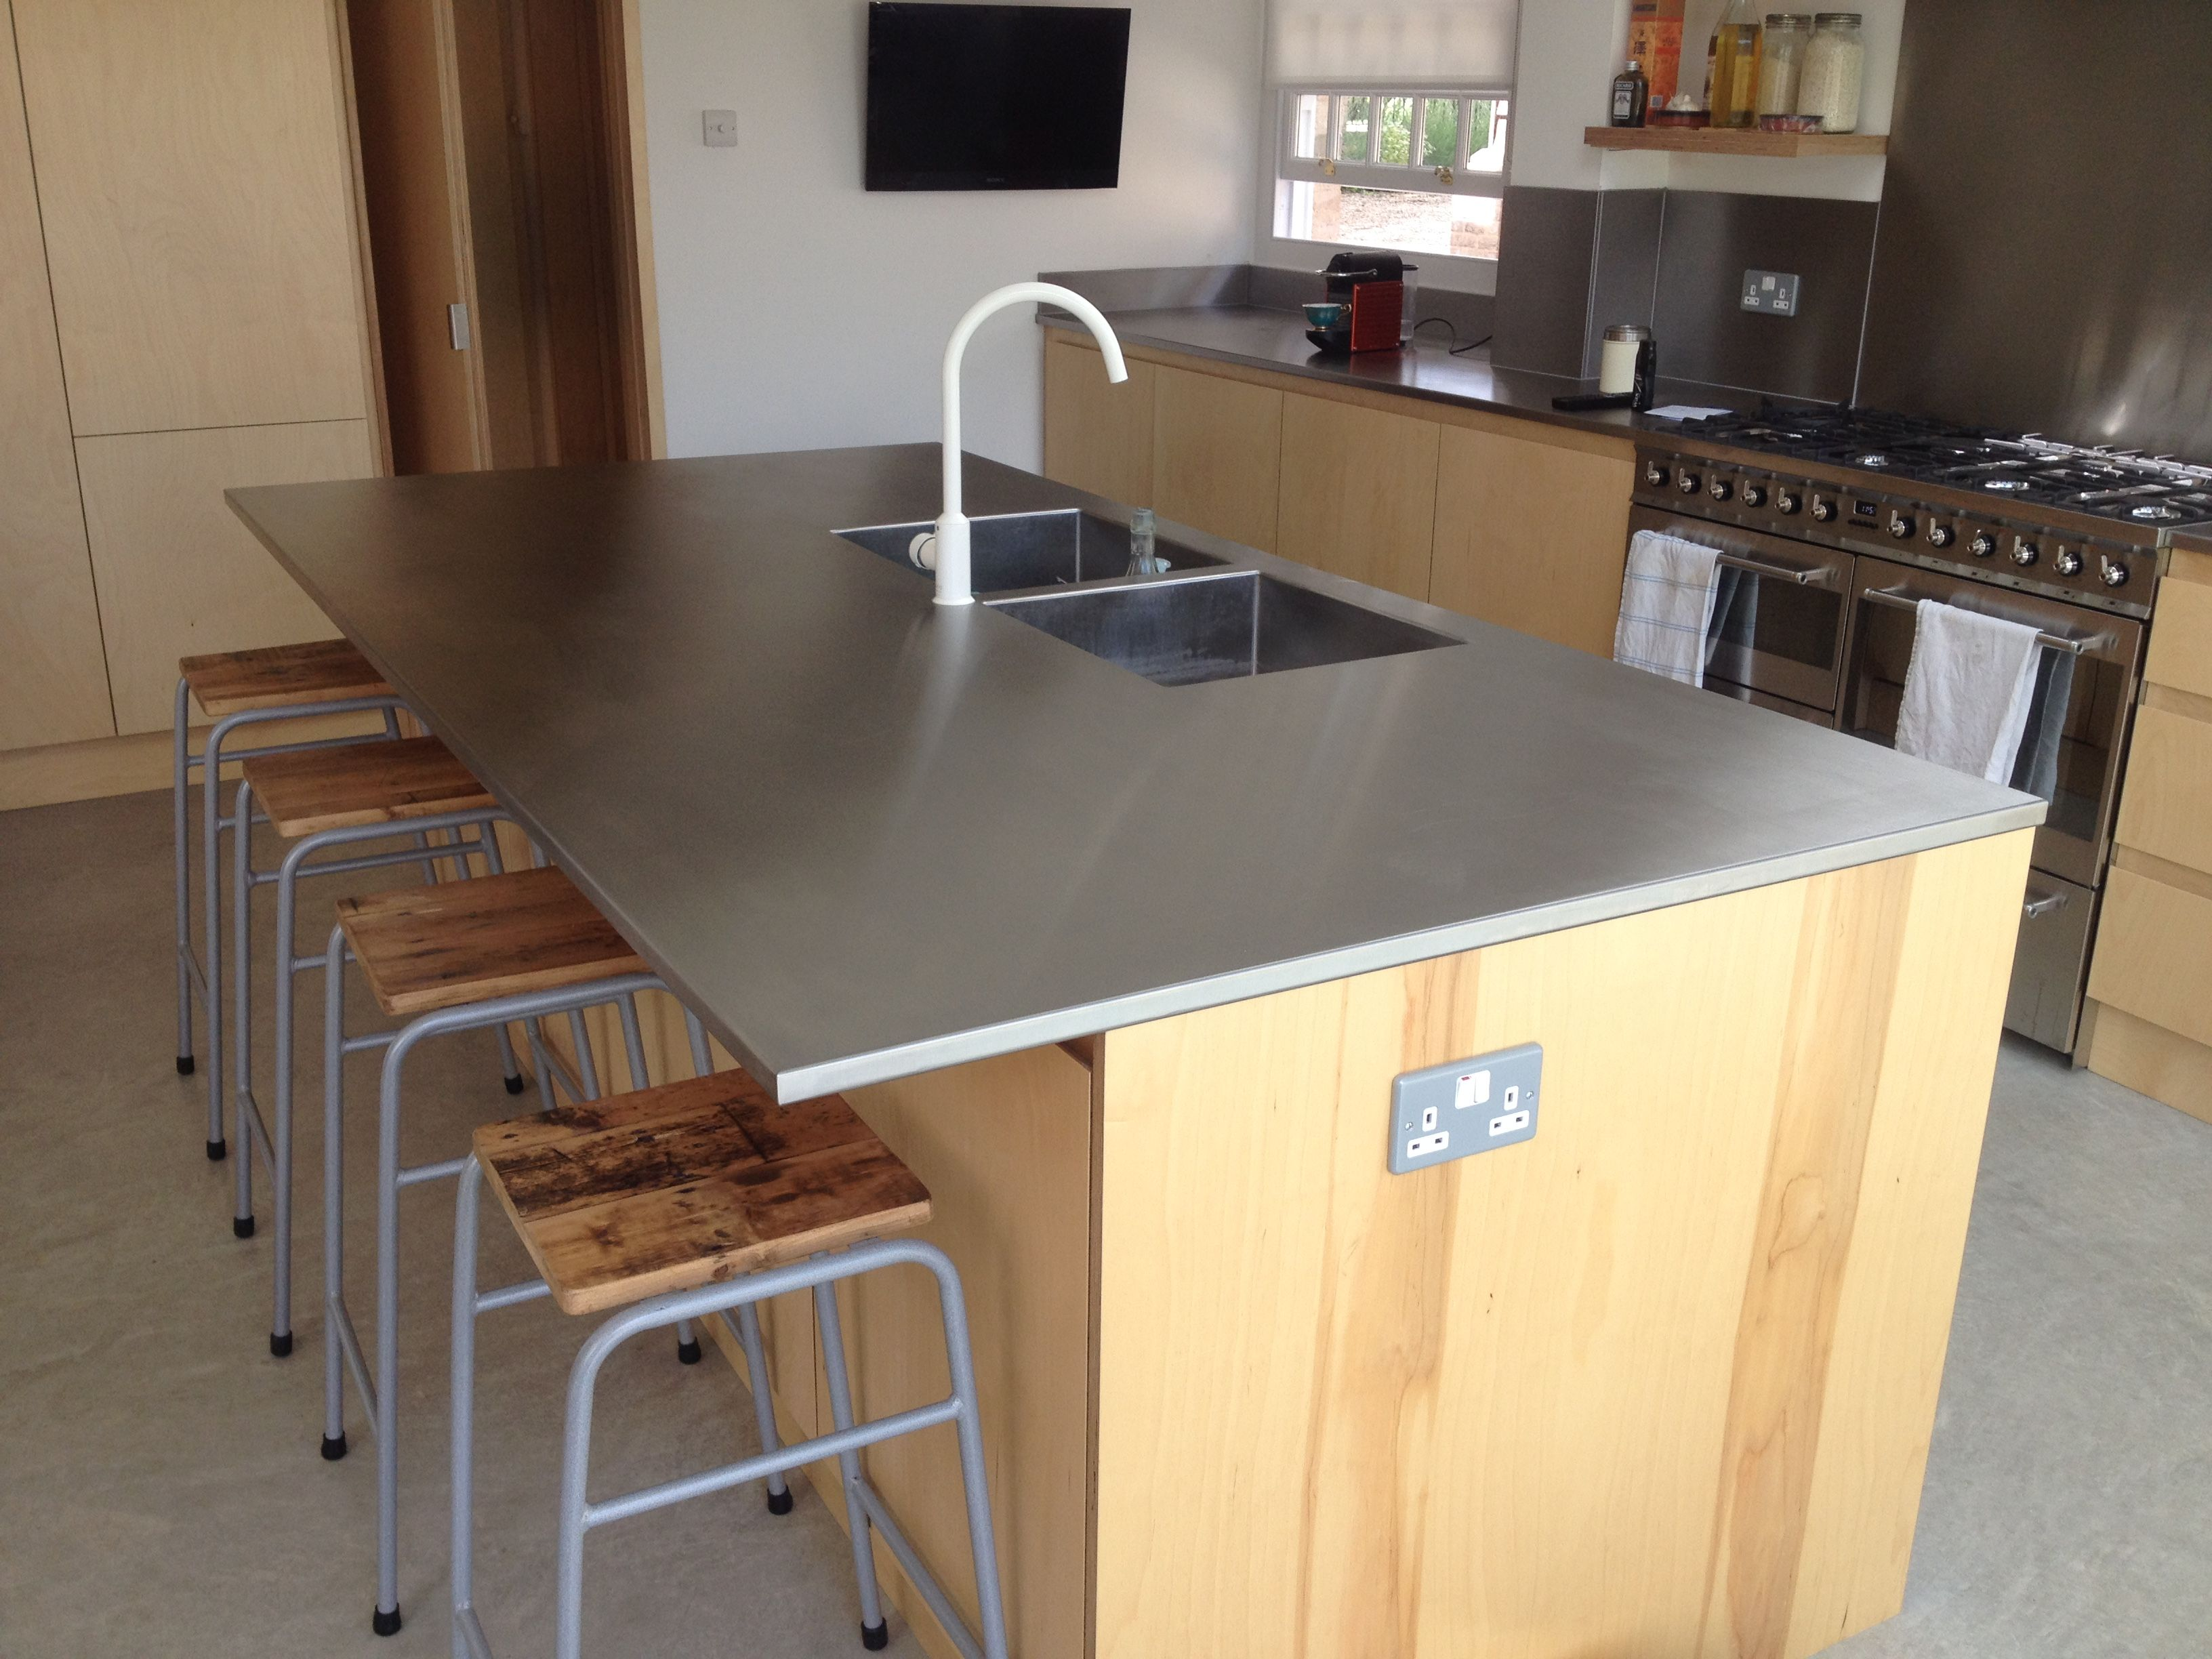 Great Looking Kitchens a great looking stainless steel island worktop here, with